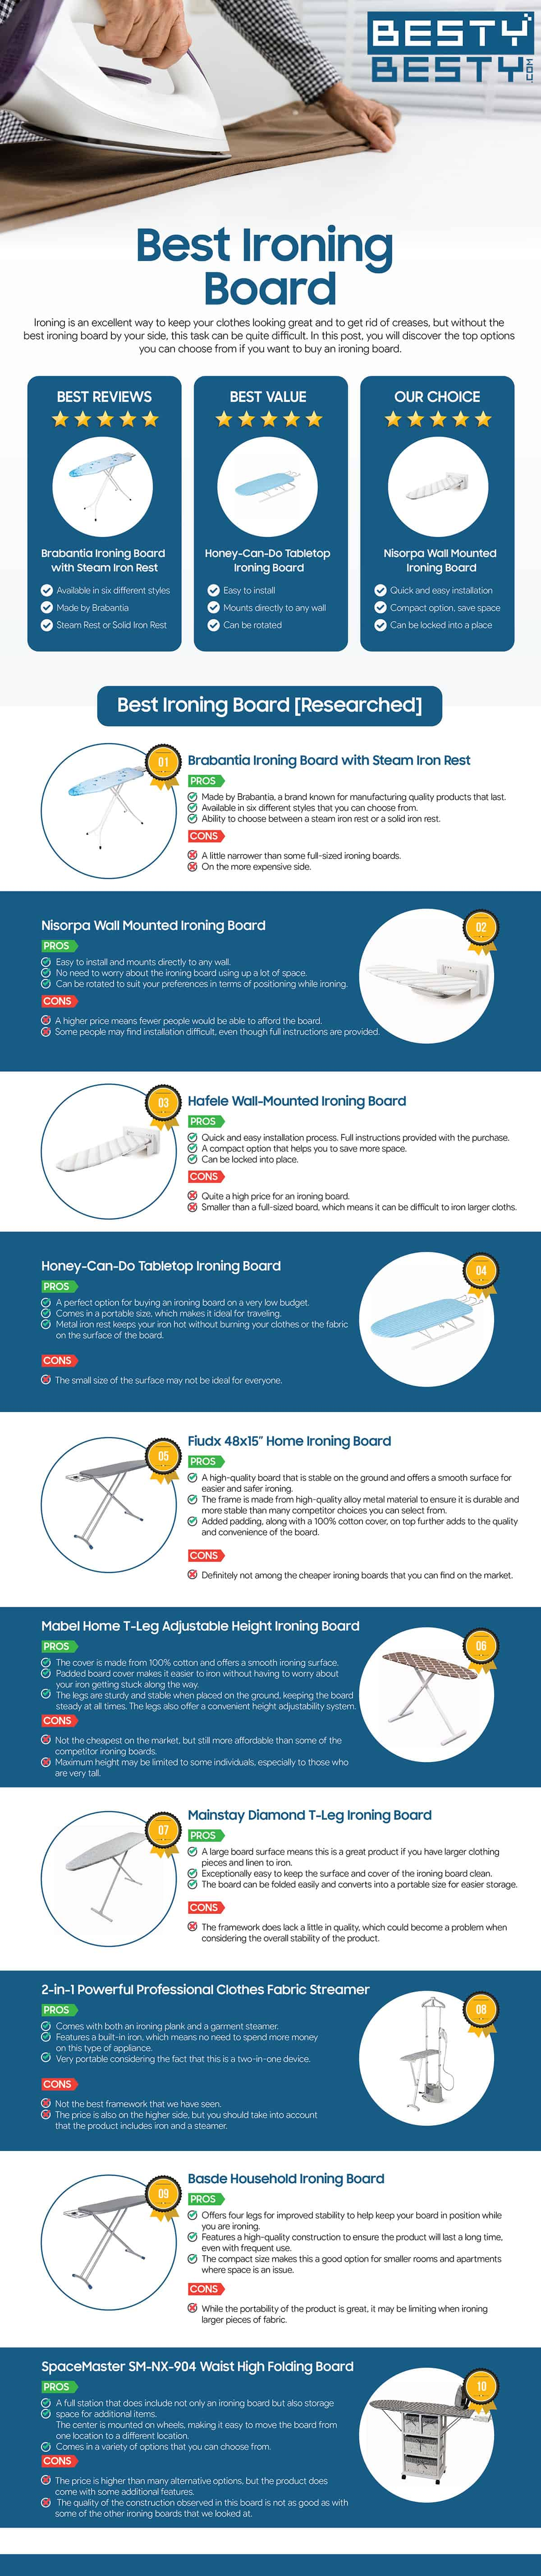 Best Ironing Board infographic by bestybesty.com